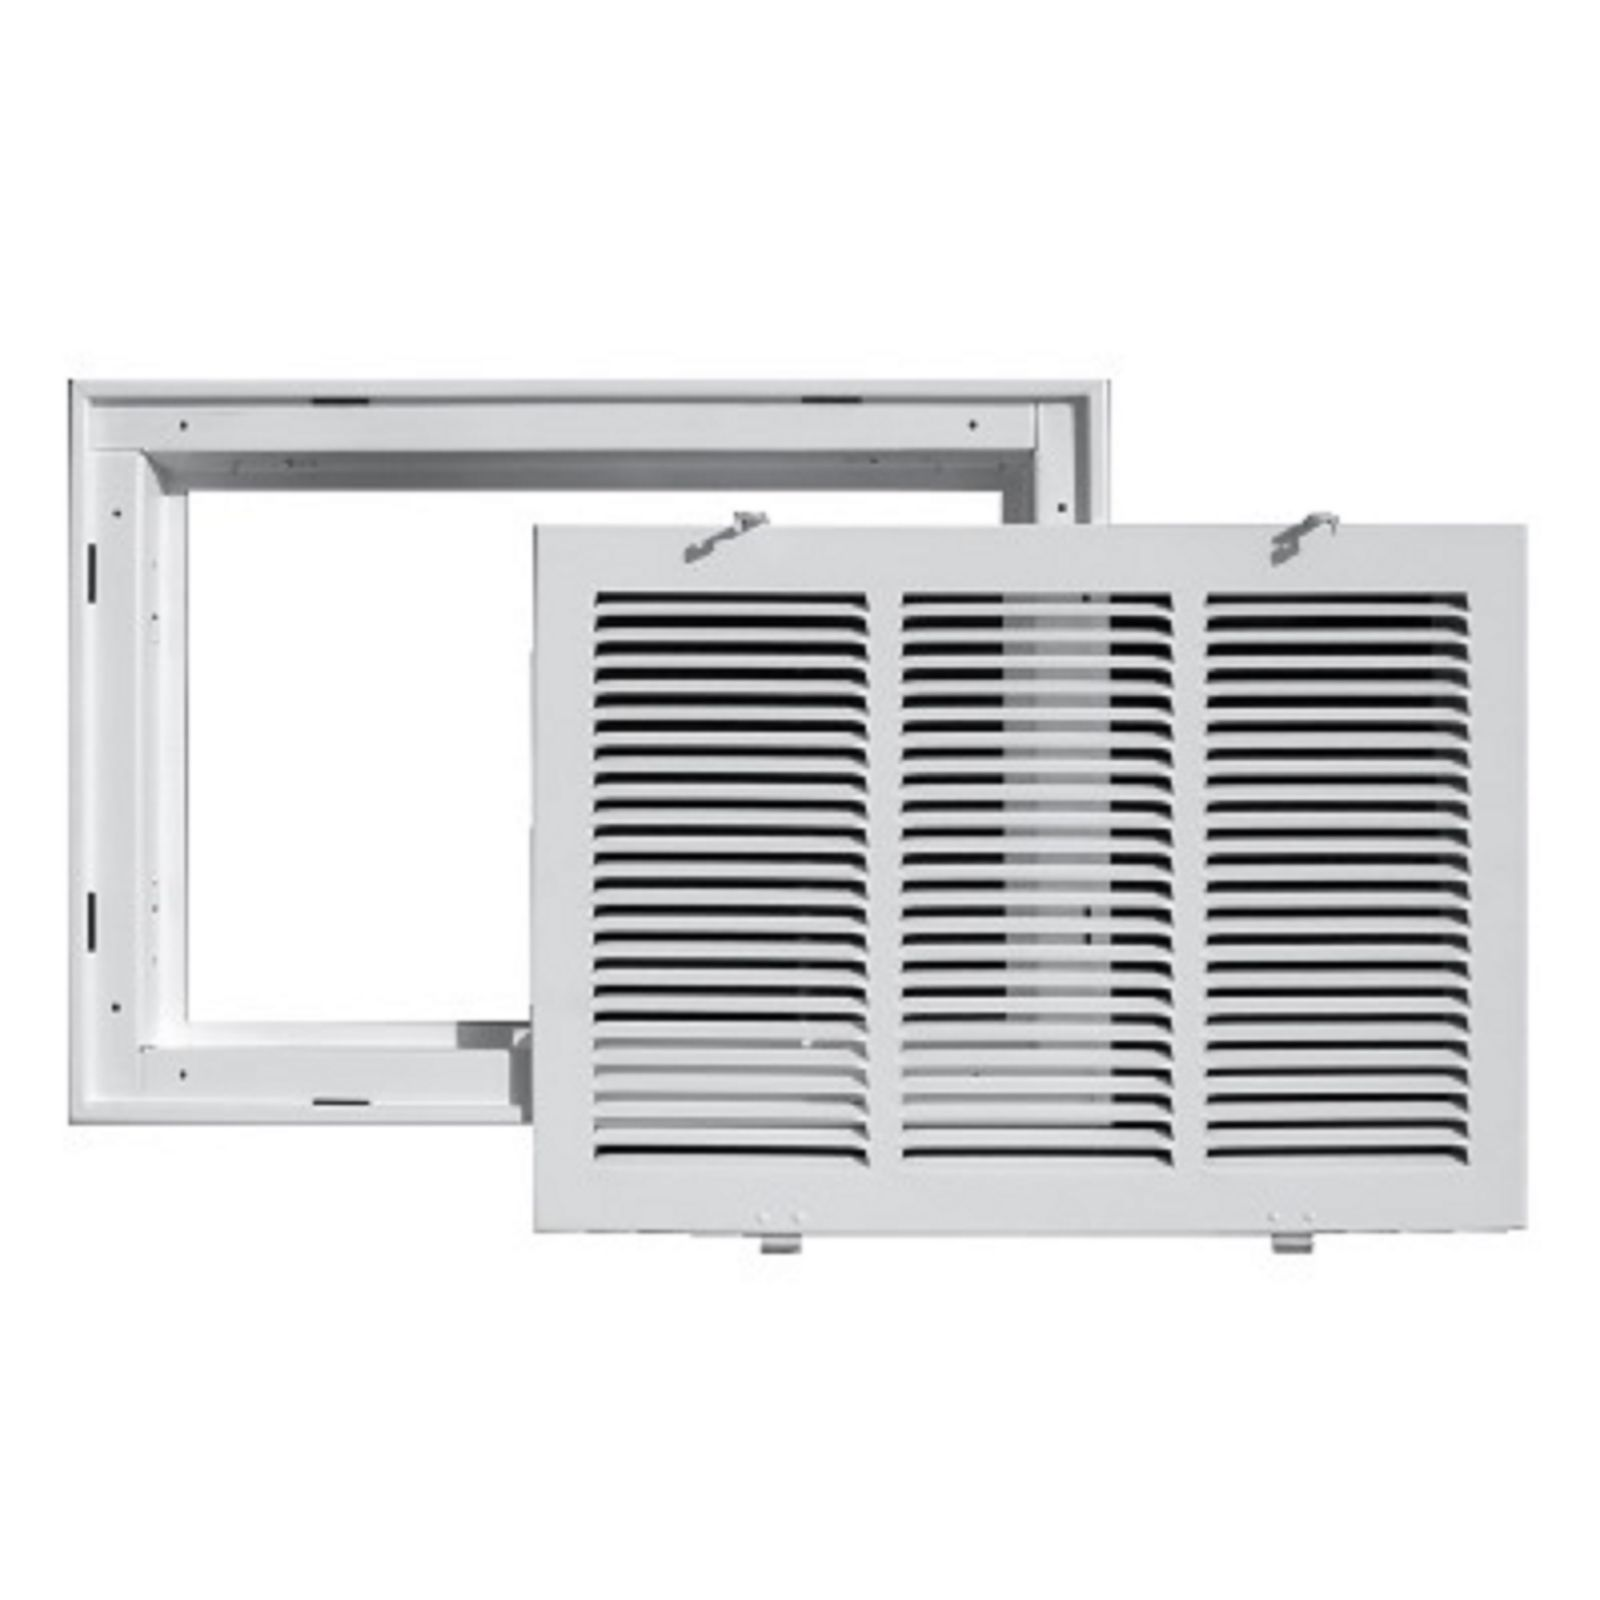 "TRUaire 190RF 14X14 - Steel Return Air Filter Grille With Removable Face, White, 14"" X 14"""